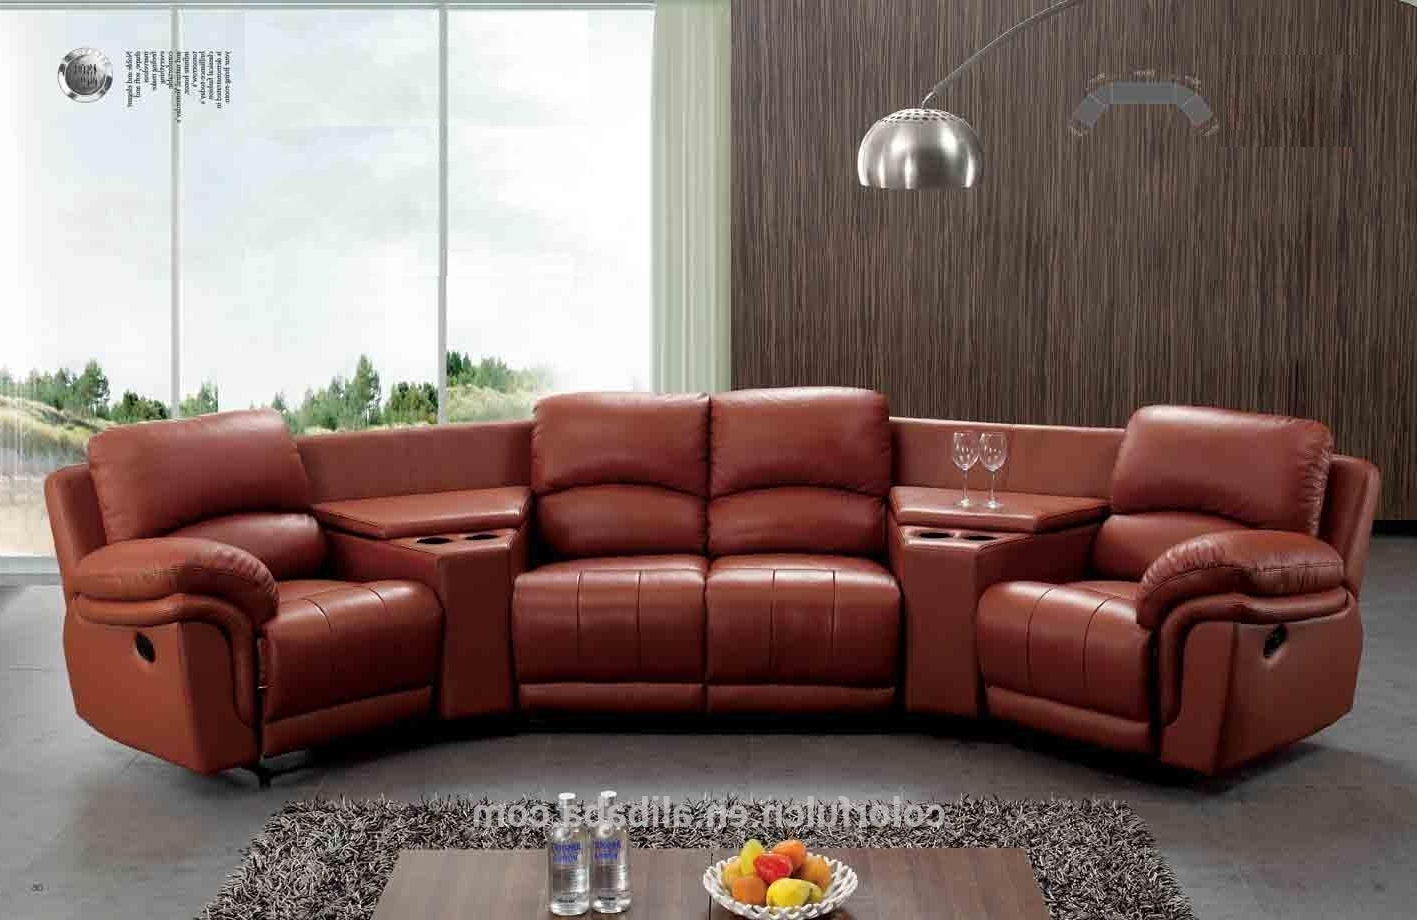 Well Liked Sectional Sofa Design: Semi Circular Sectional Sofa Couches Round Regarding Sectional Sofas In Hyderabad (View 2 of 15)